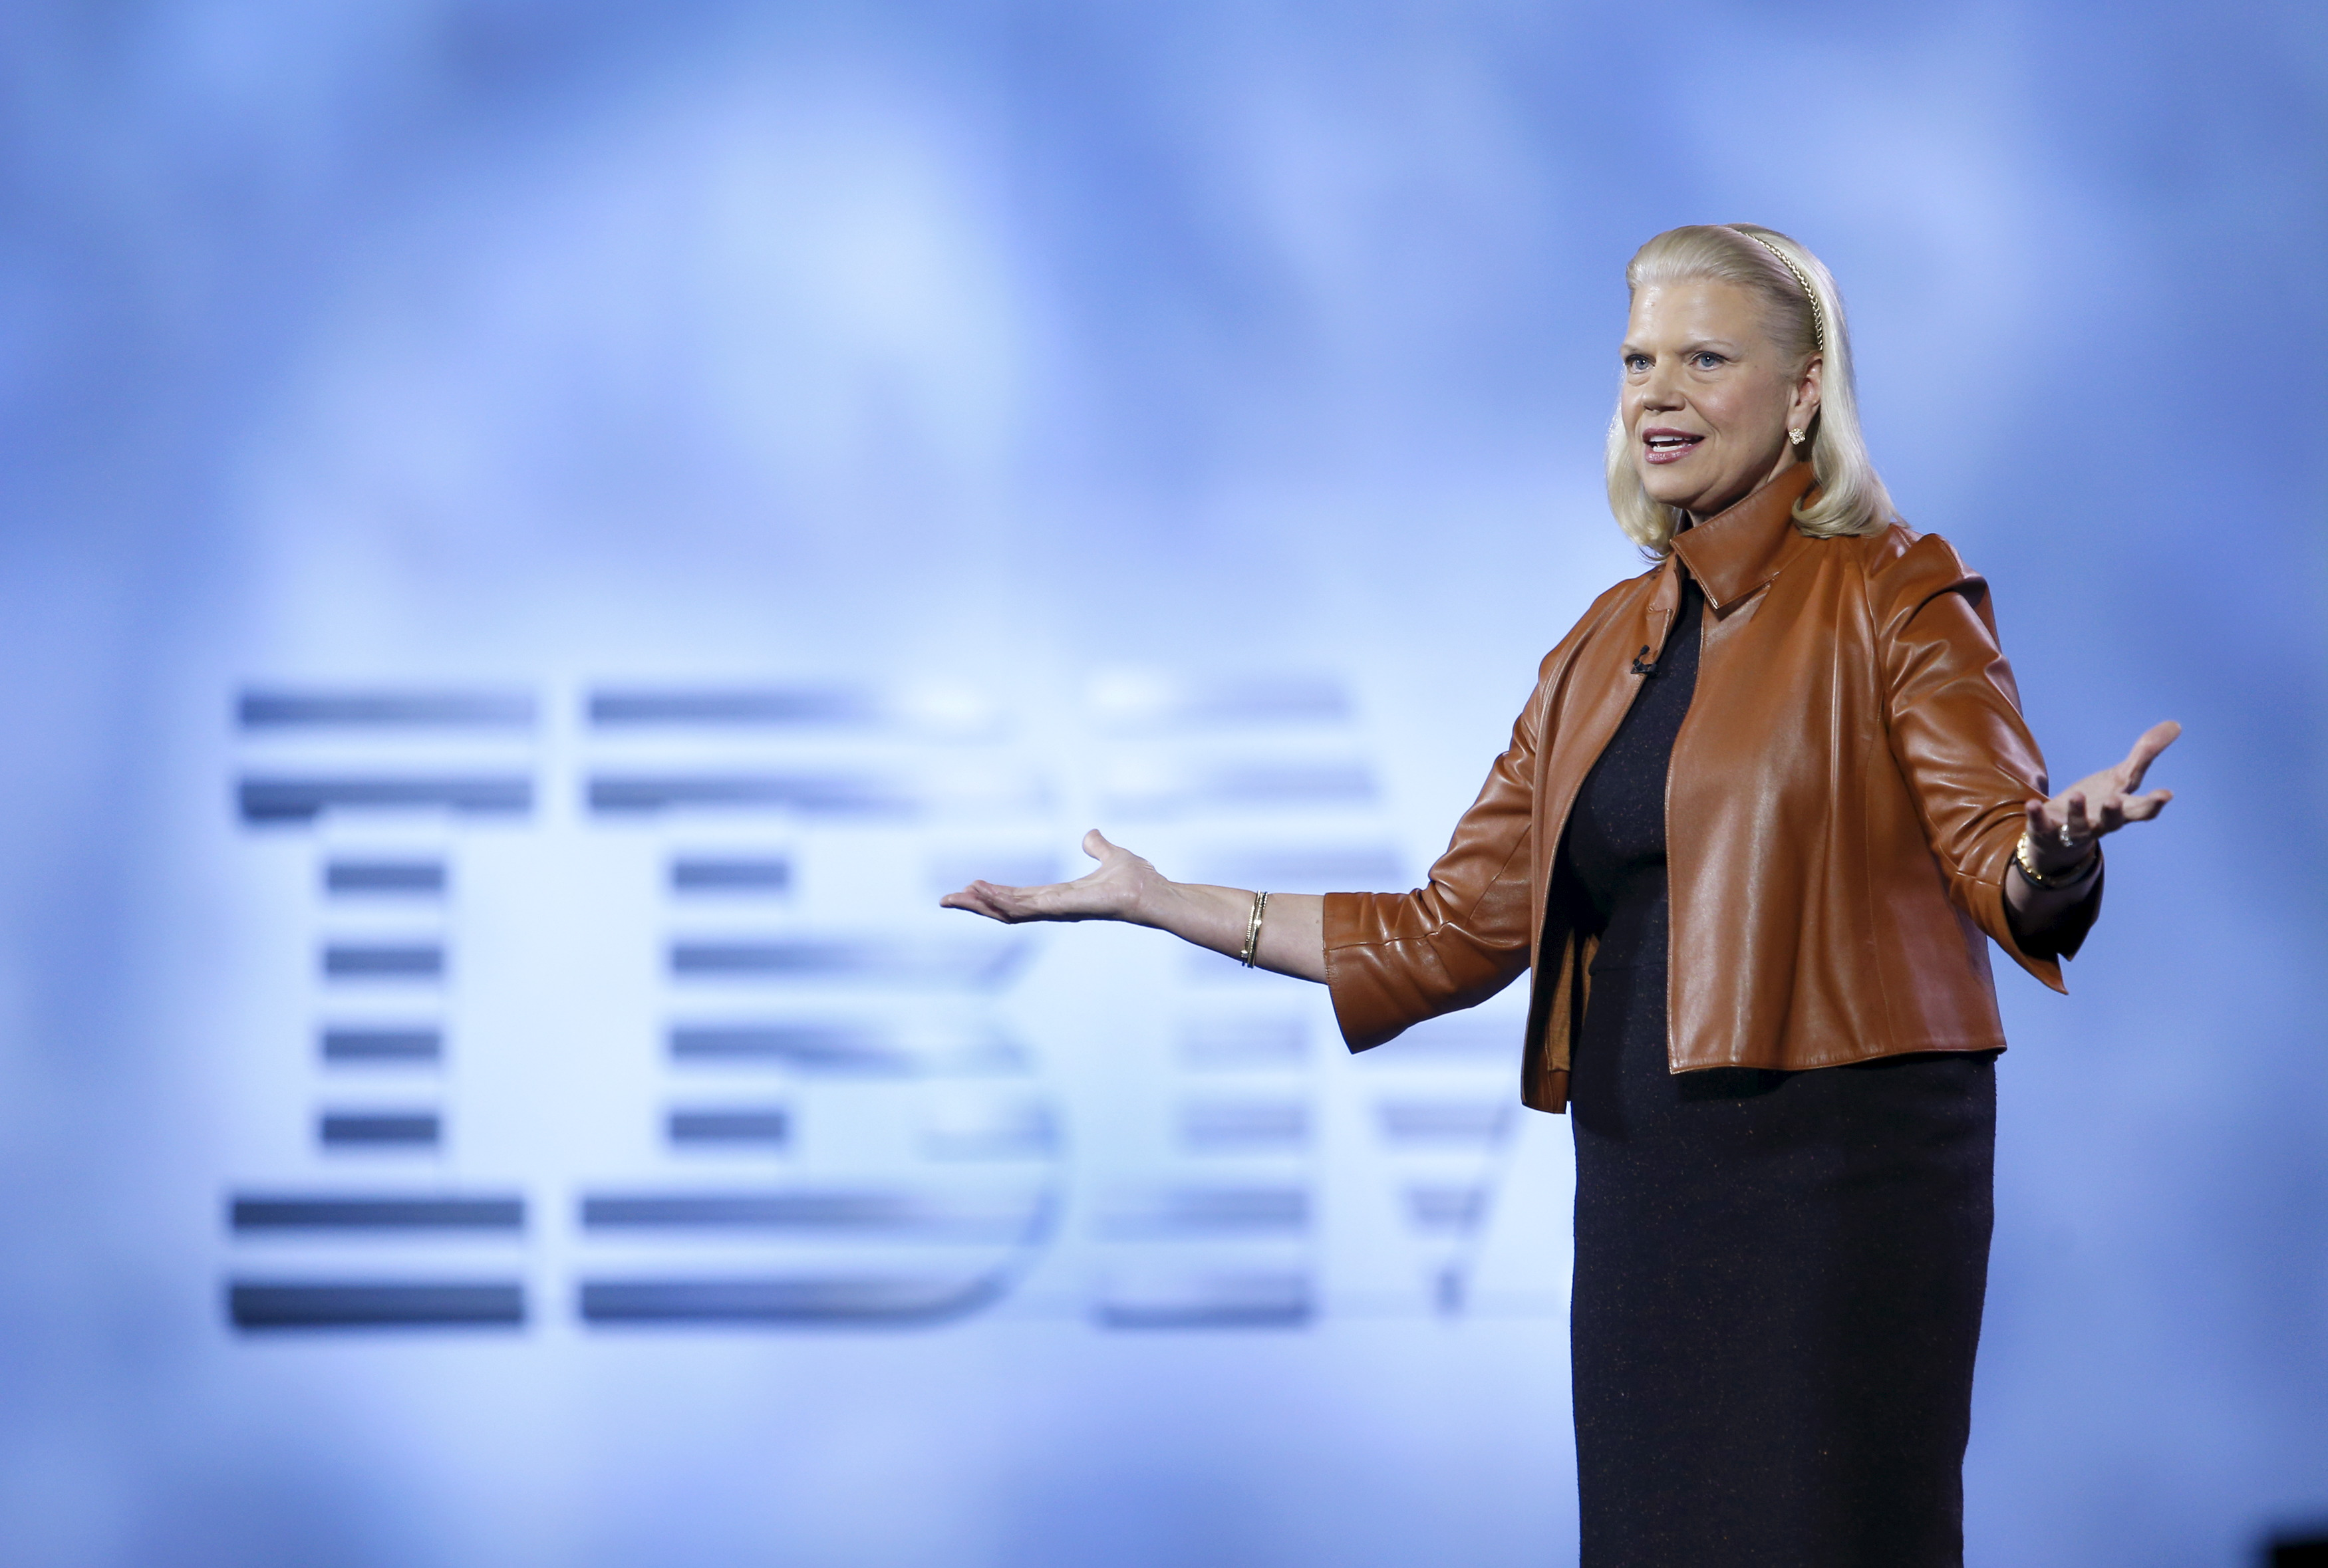 Ginni Rometty, chairman, president and CEO of IBM, speaks during a keynote address.